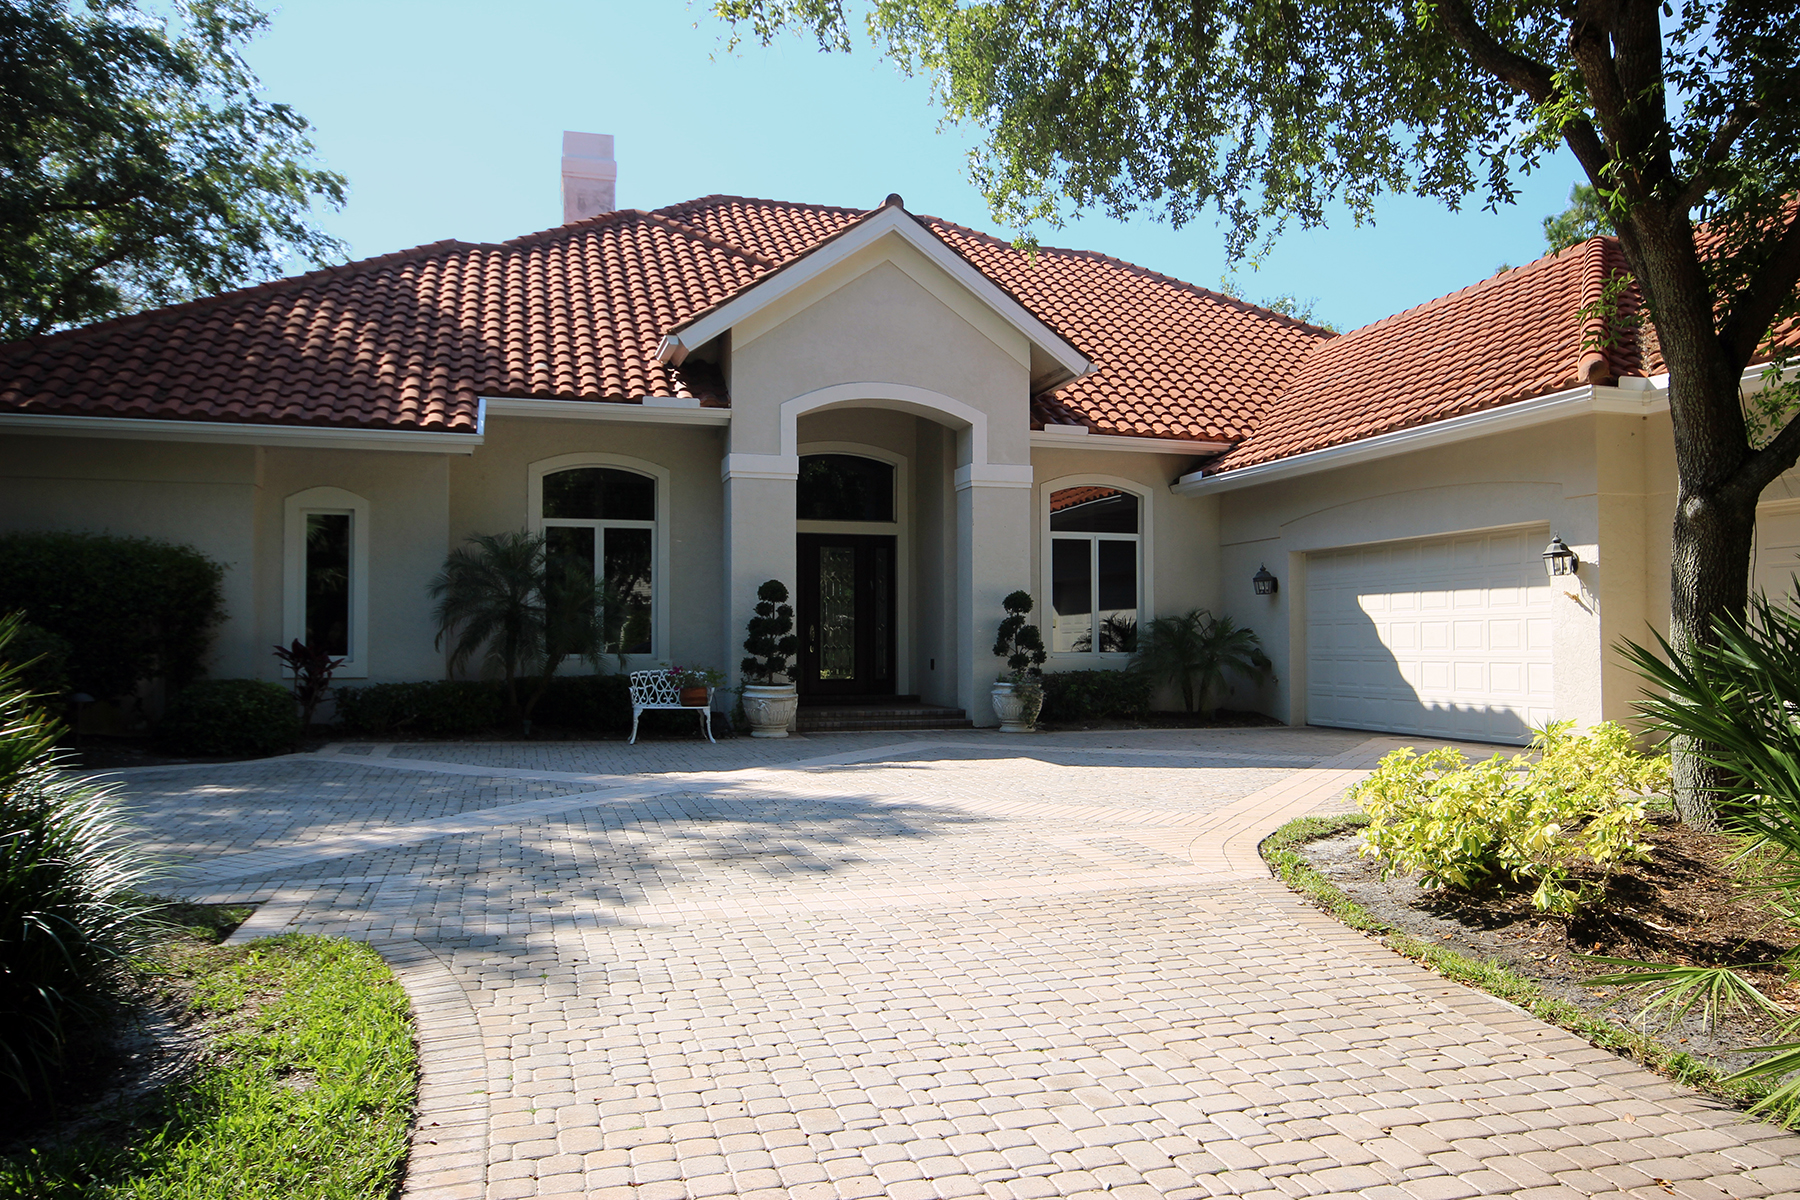 Single Family Home for Sale at COLLIERS RESERVE 12502 Colliers Reserve Naples, Florida 34110 United States